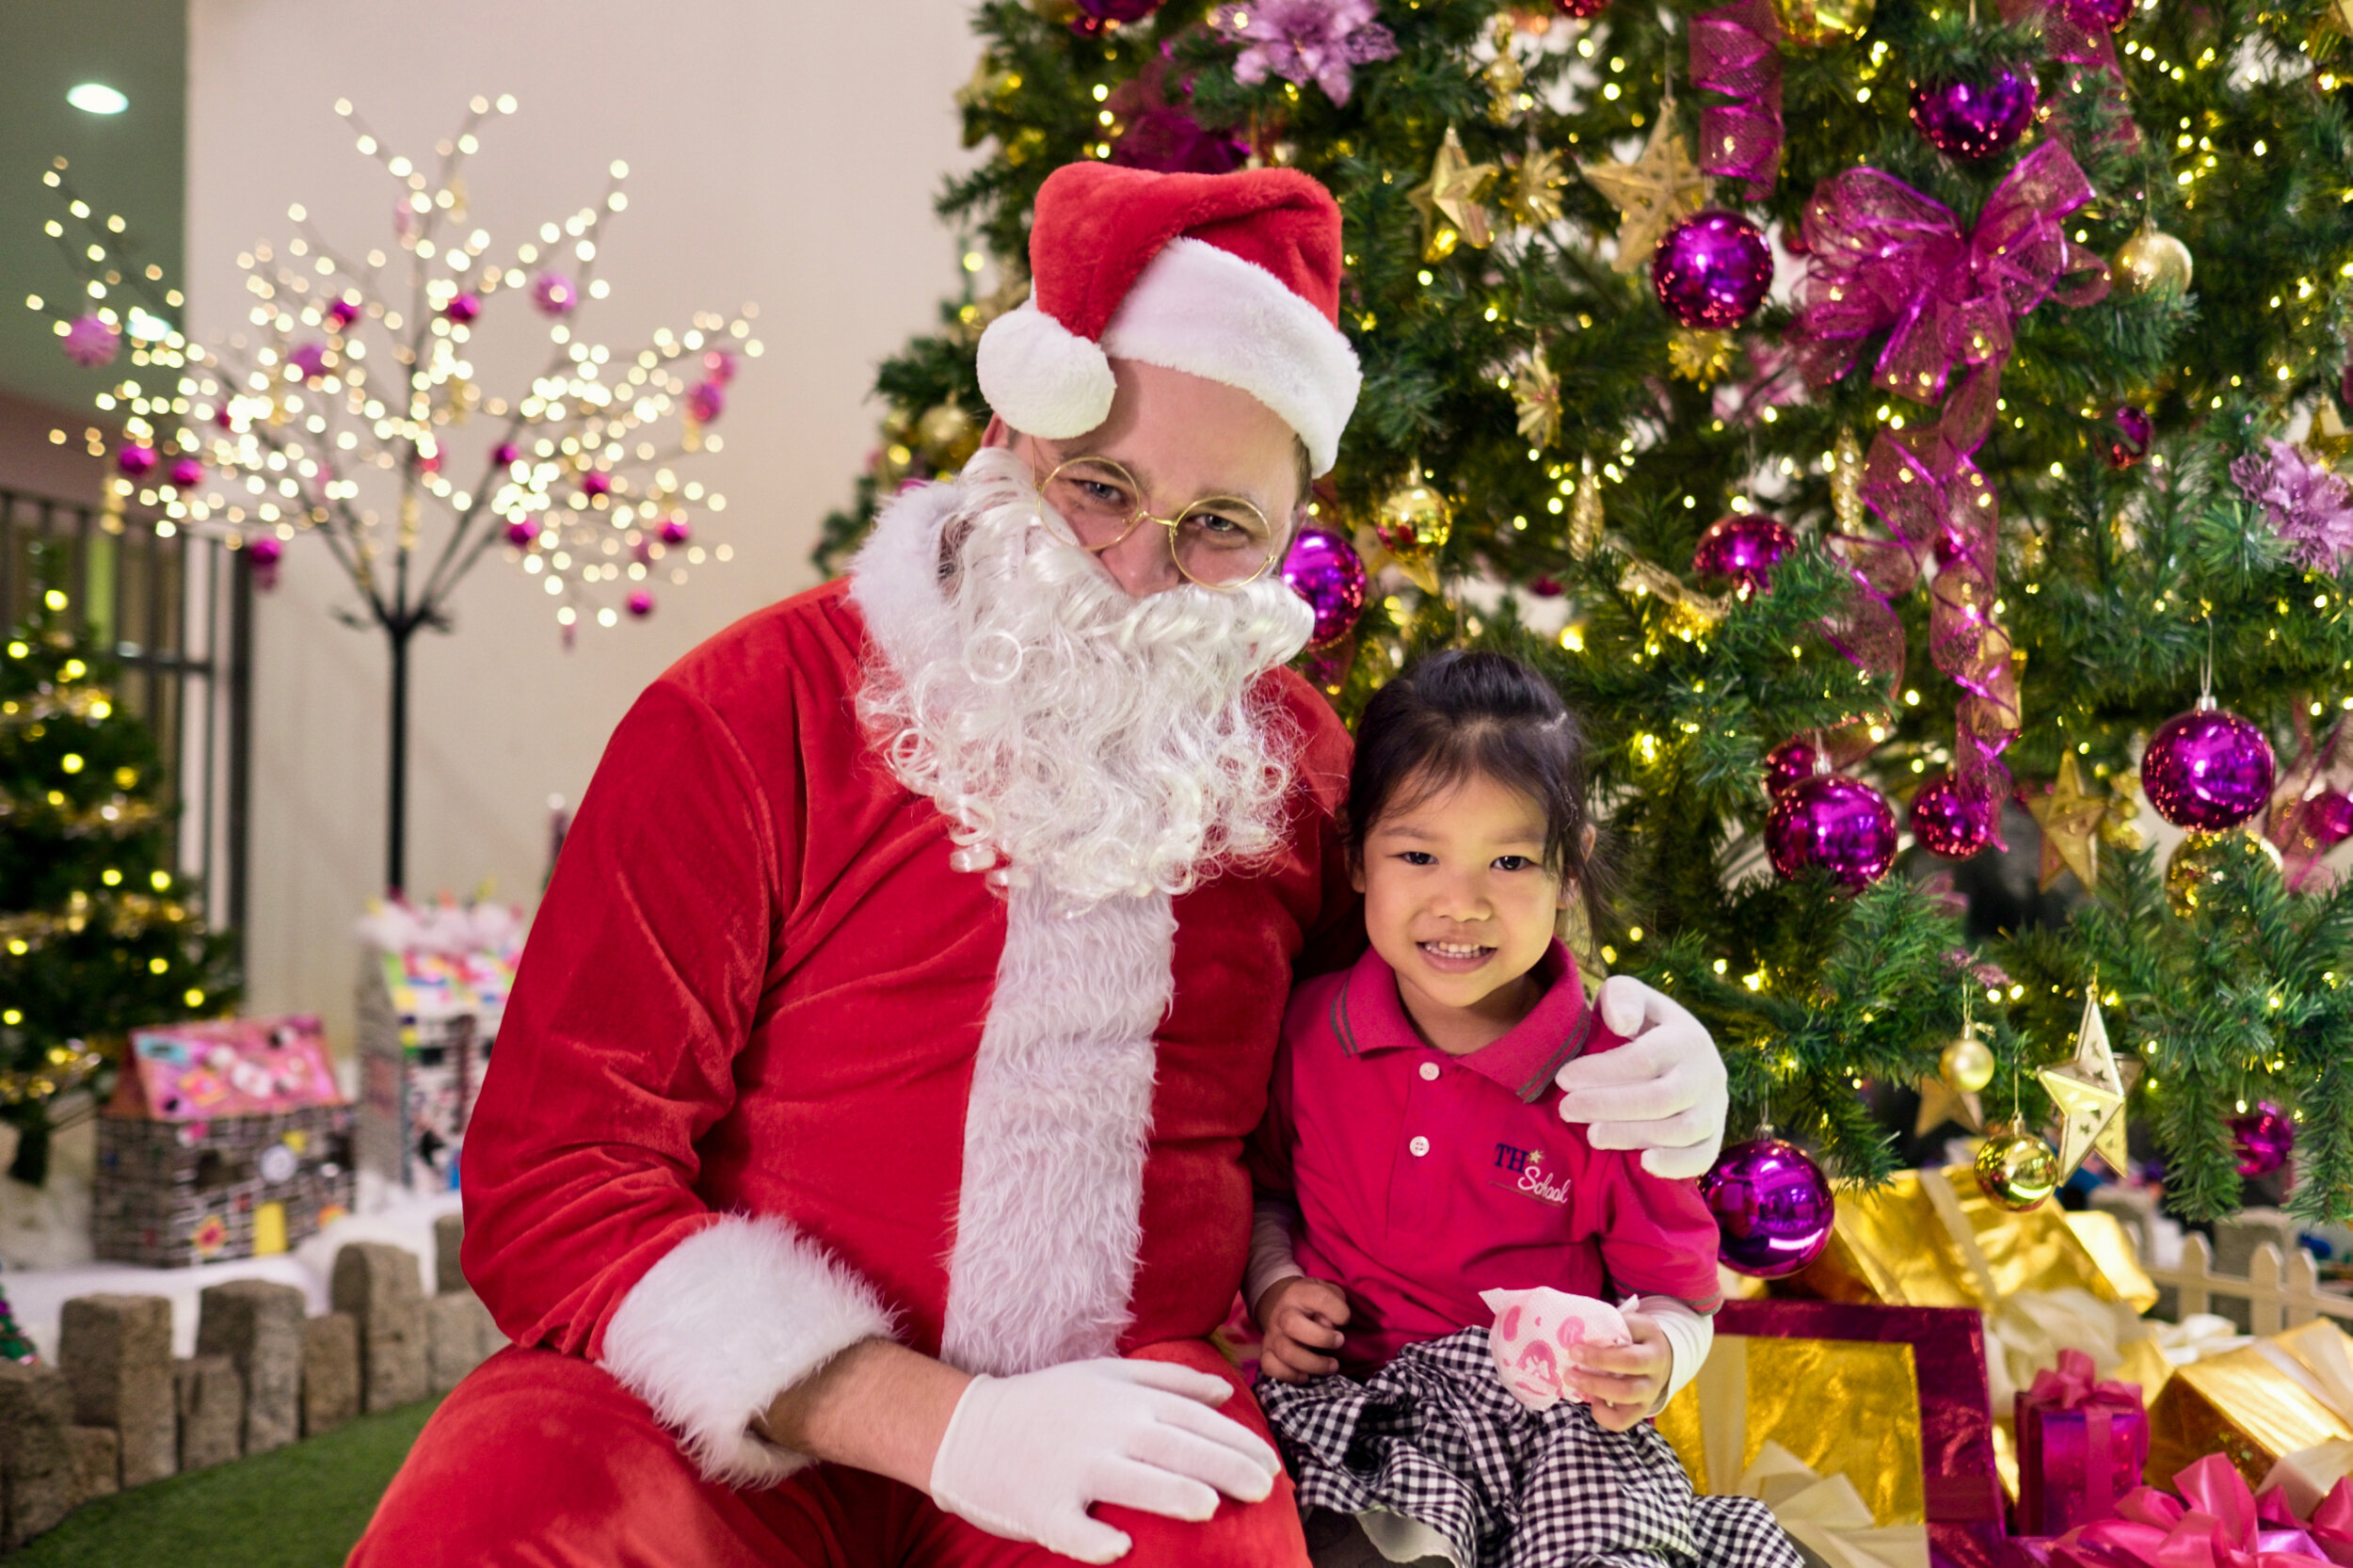 Photoshoot with Santa Clause-687.jpg